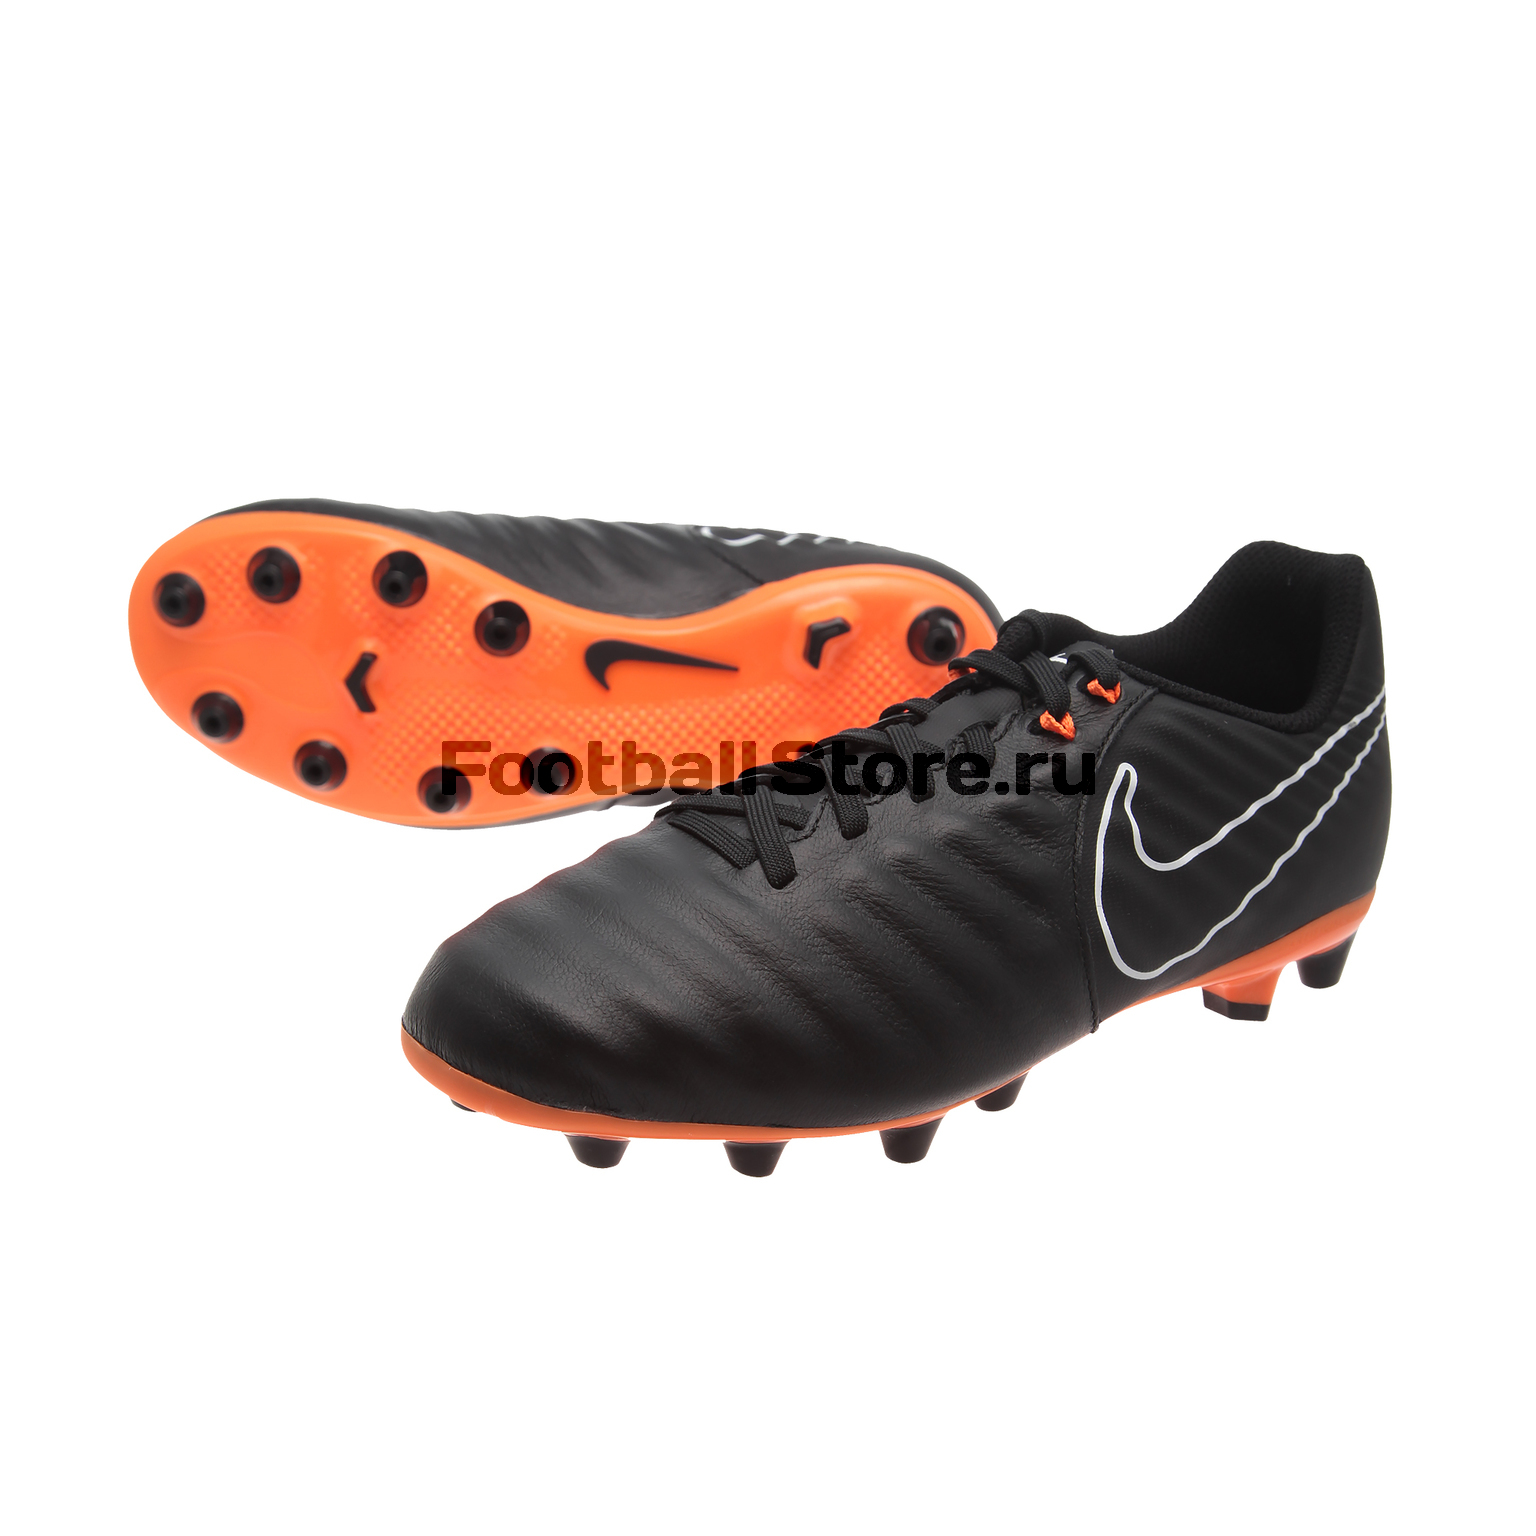 Бутсы Nike JR Legend 7 Academy AG-PRO AH8807-080 бутсы nike superfly academy gs cr7 jr fg mg aj3111 390